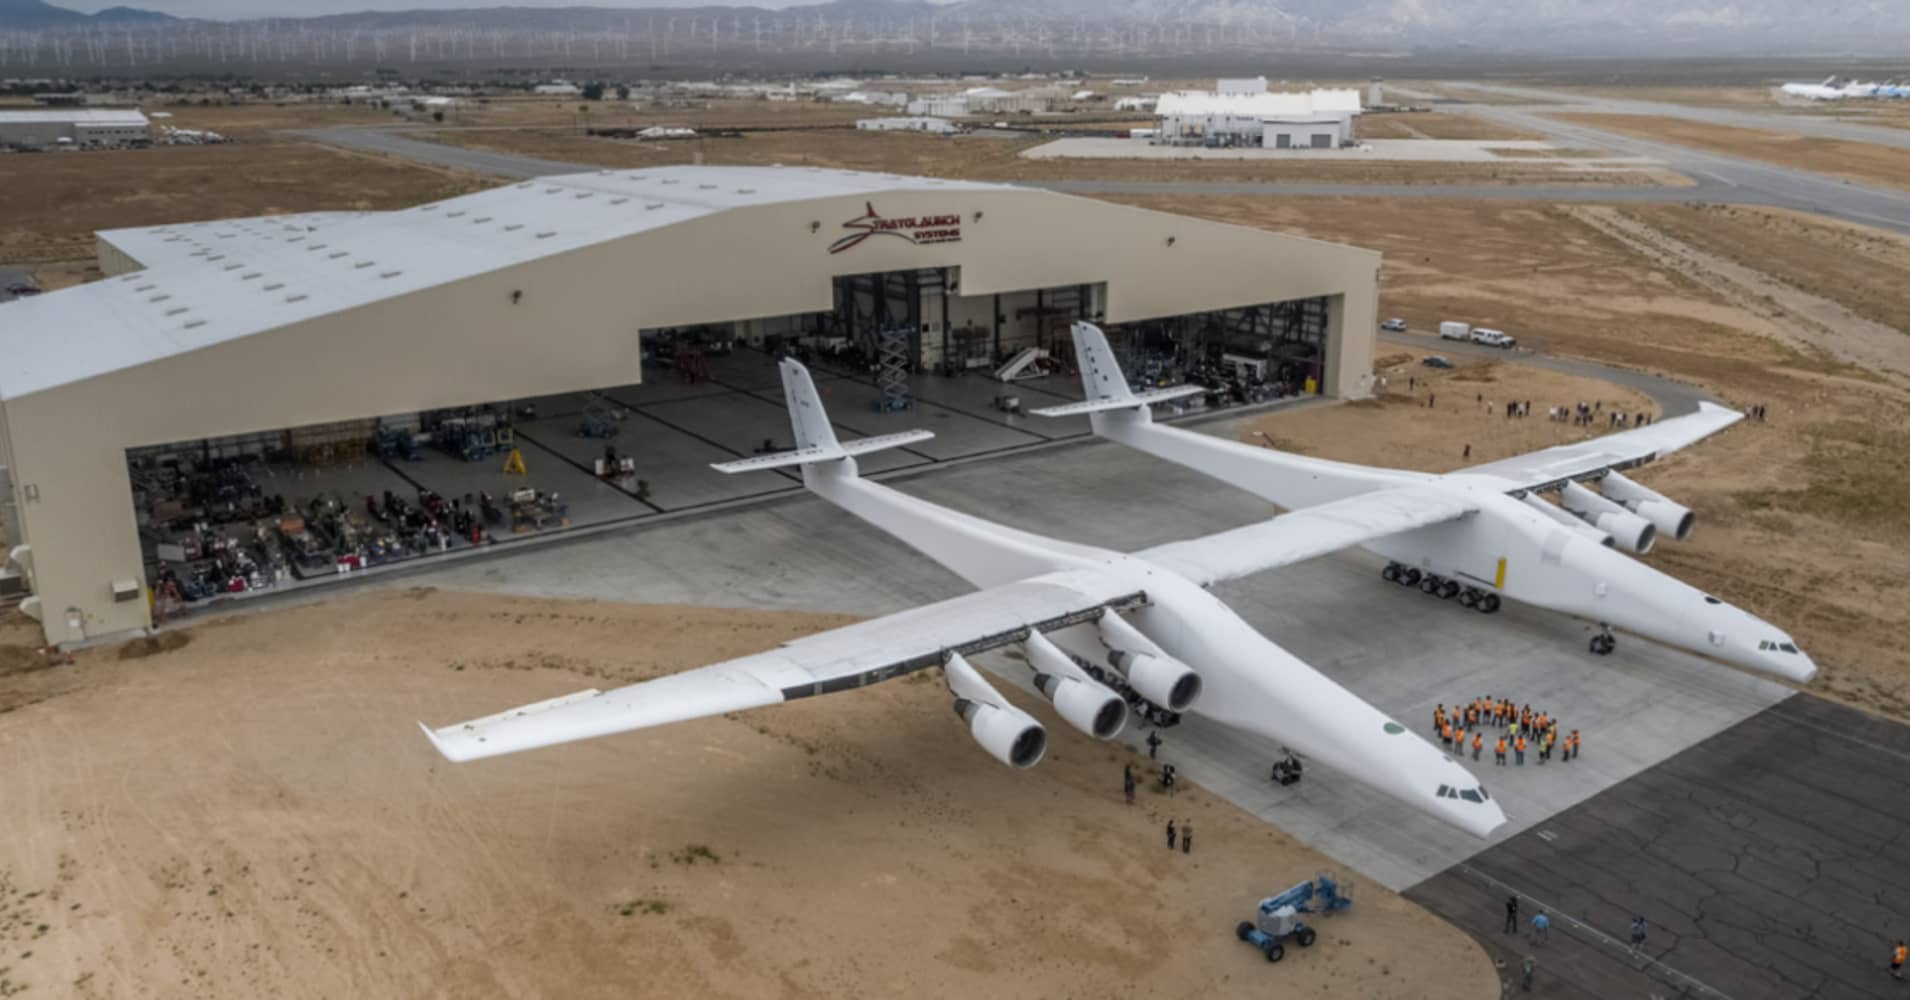 World's biggest ever airplane unveiled by Microsoft co-founder